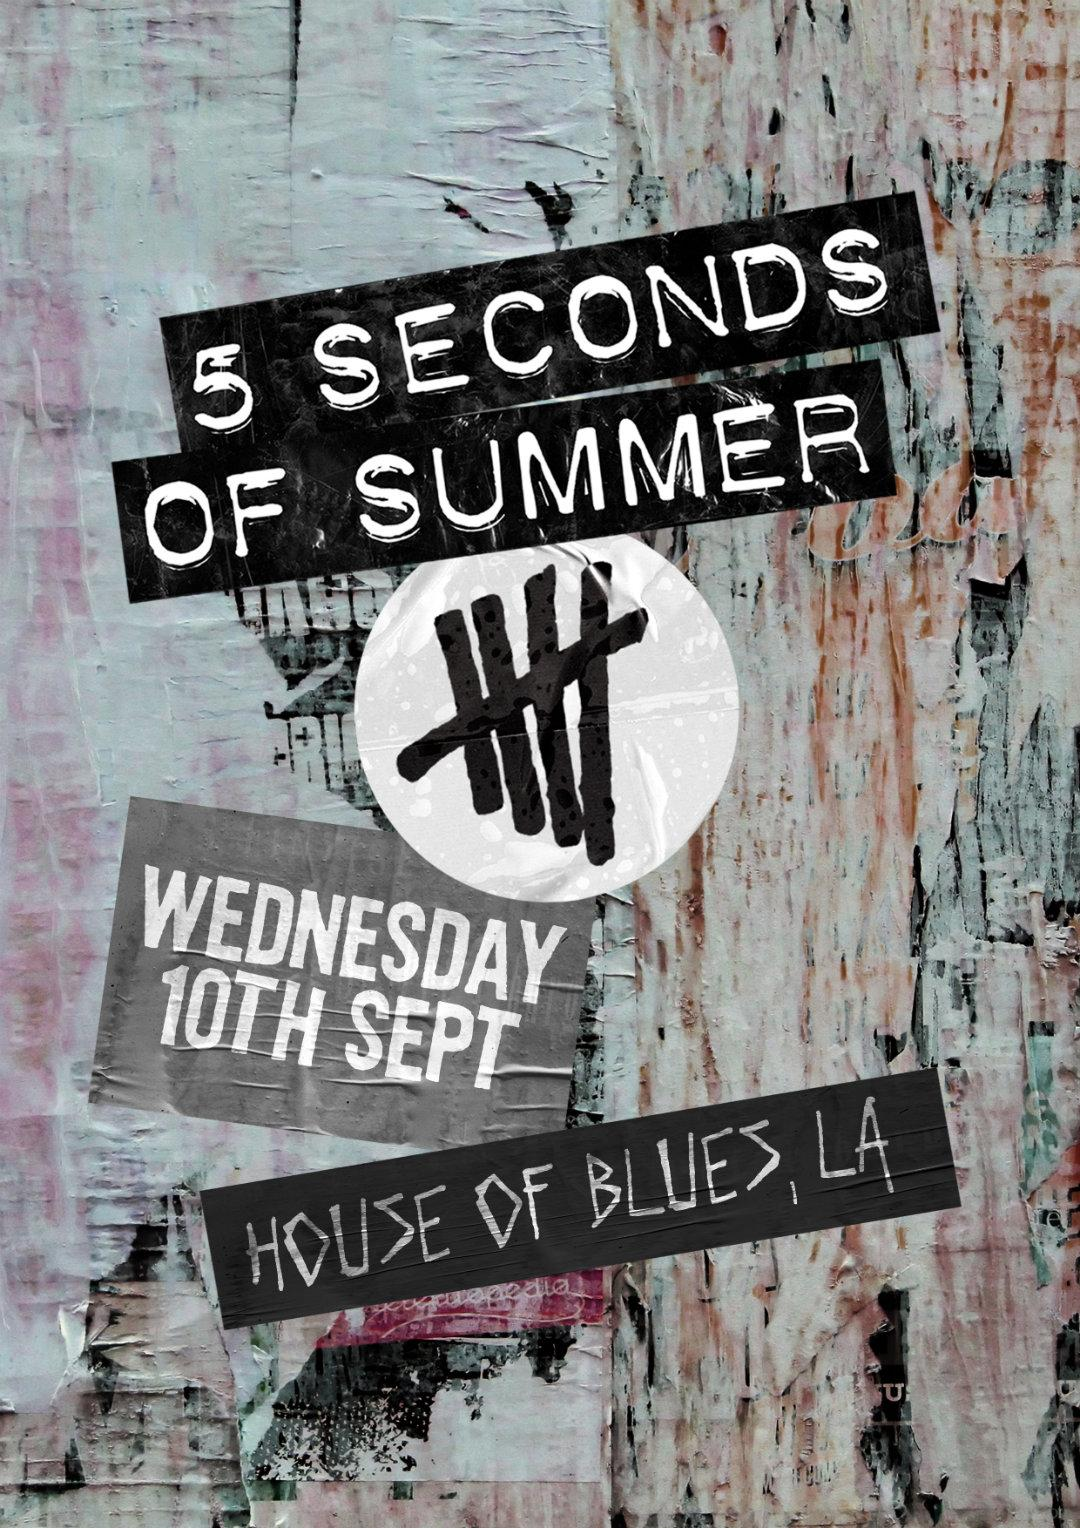 5sos 5 seconds of summer sept september 10 10th 9/10 la los angeles ca cali california hob house of blues special show performance